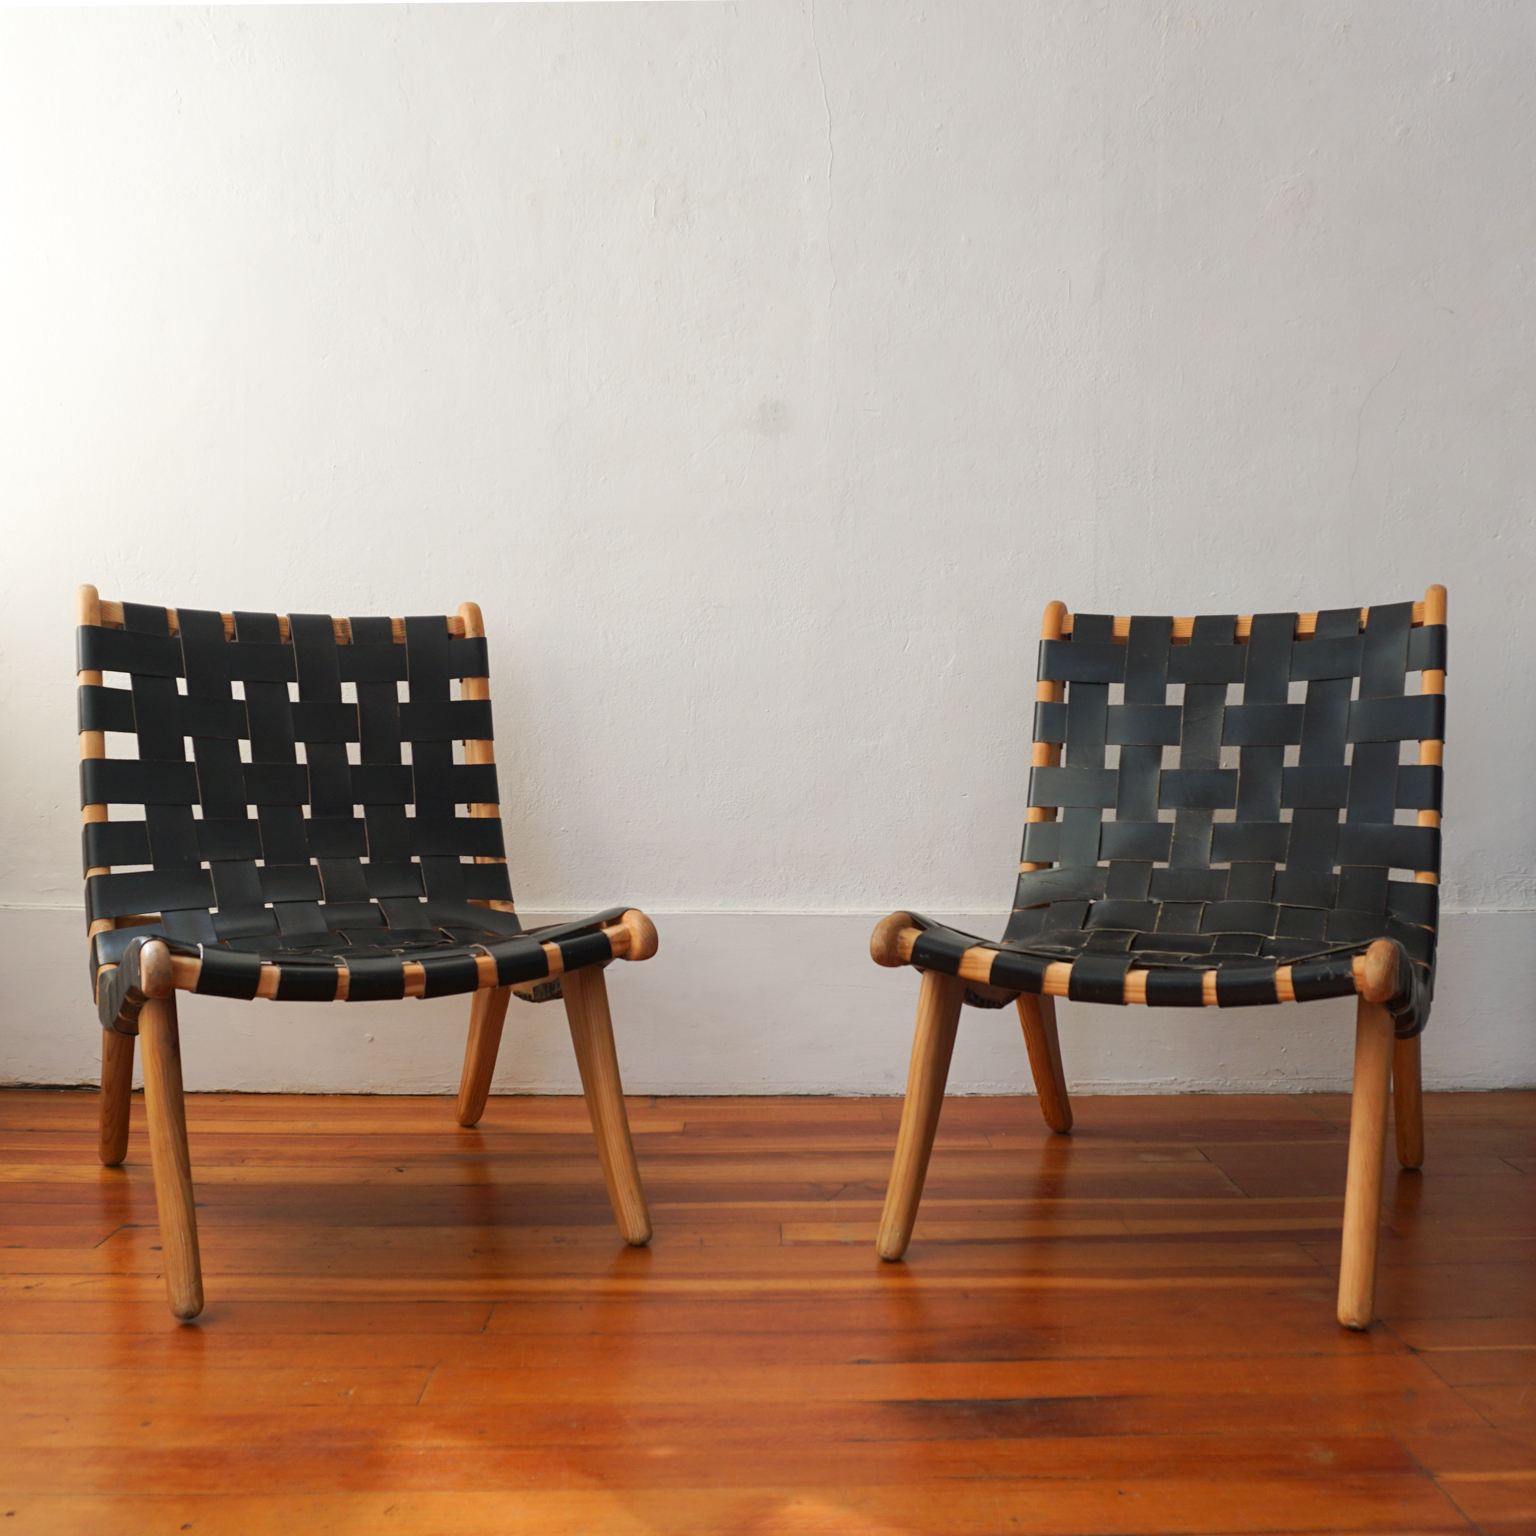 Pair Of San Miguelito Chairs By Michael Van Beuren For Domus Of